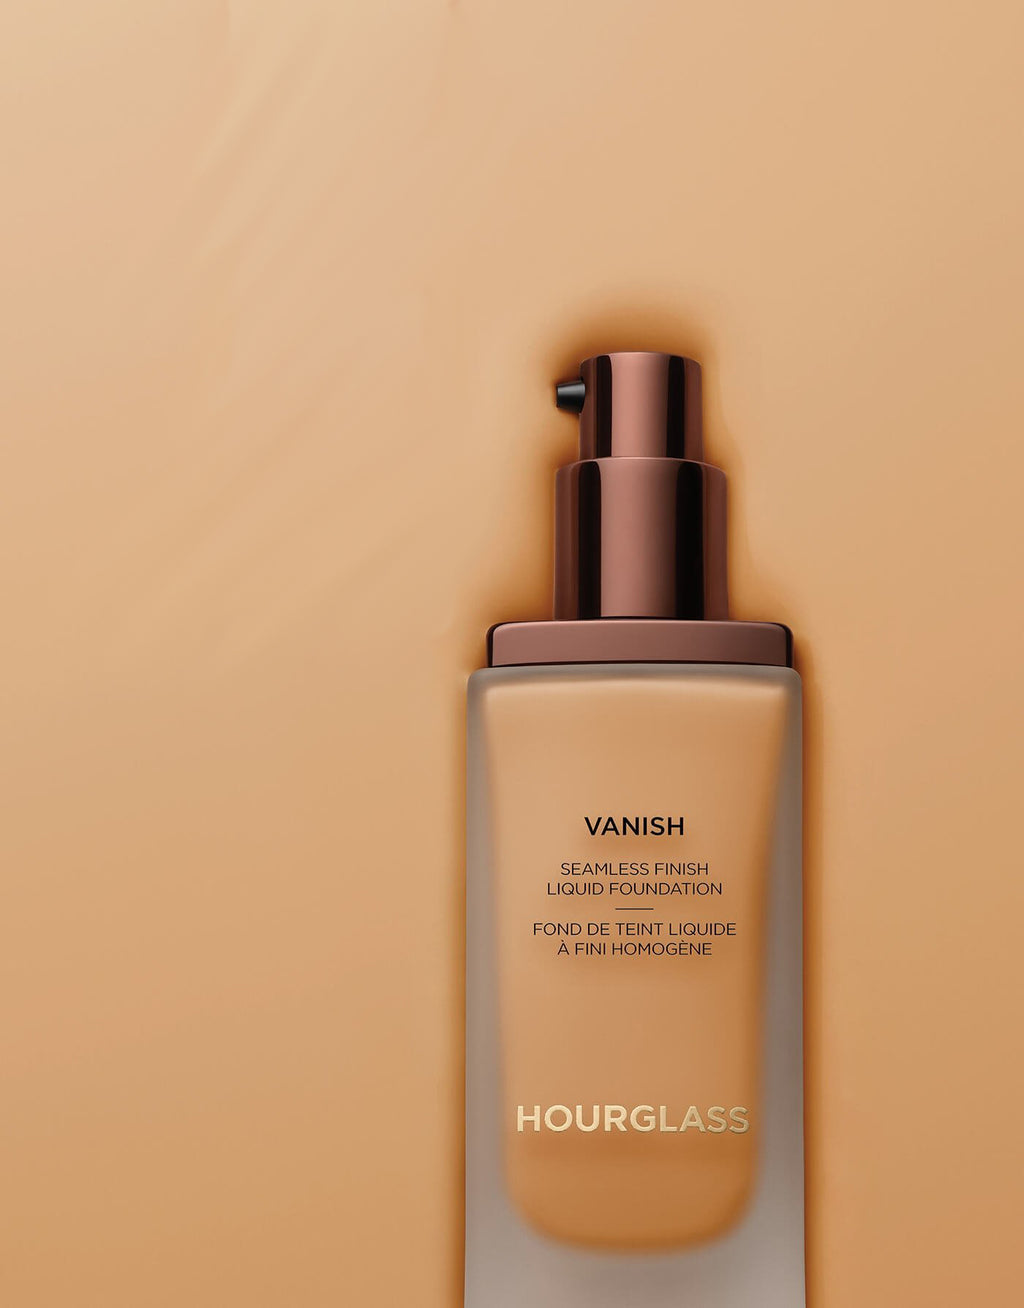 Hourglass Vanish™ Seamless Finish Liquid Foundation | HODIVA LUX